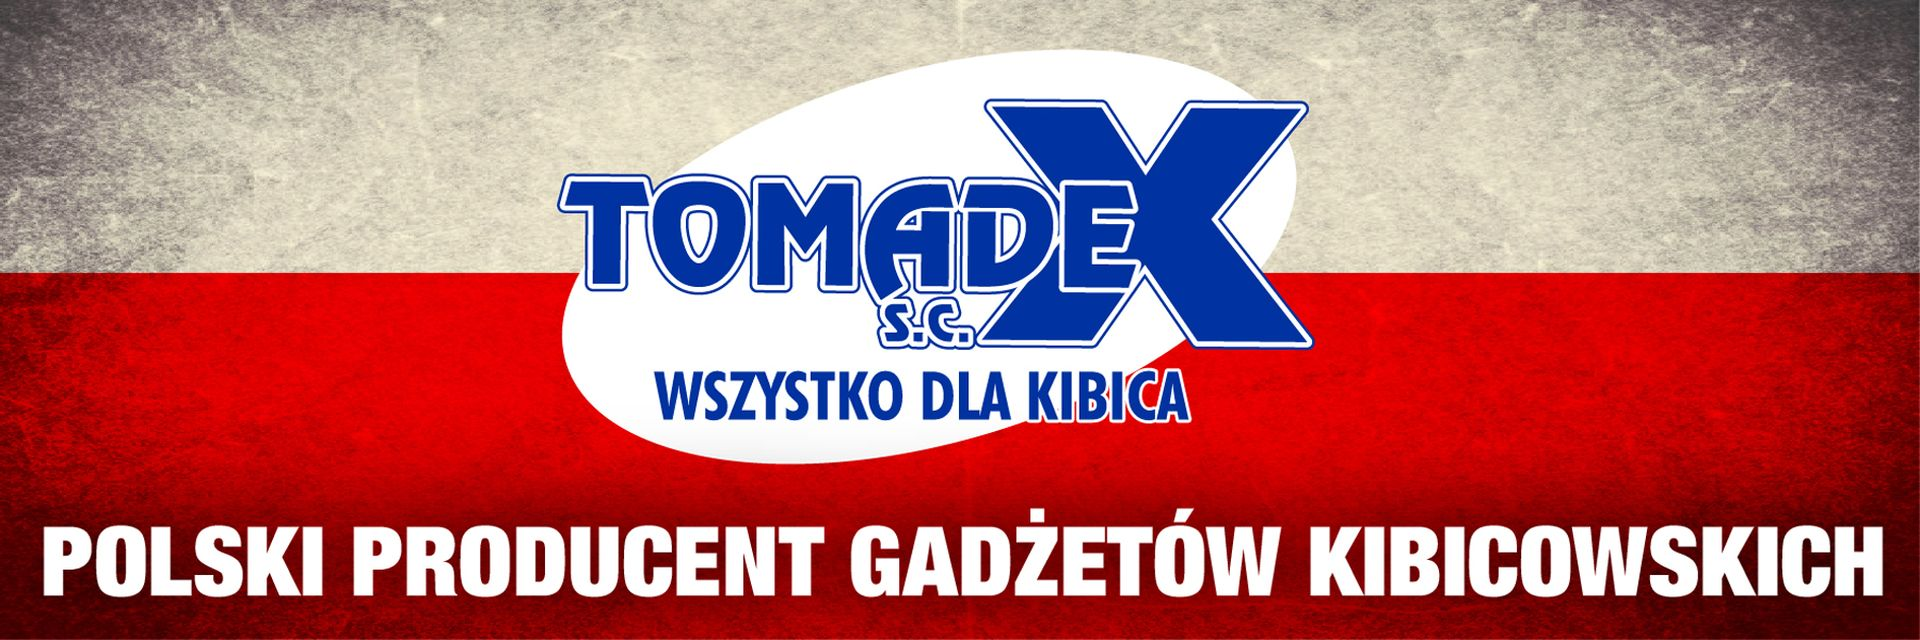 tomadex-producent-kibicowskich